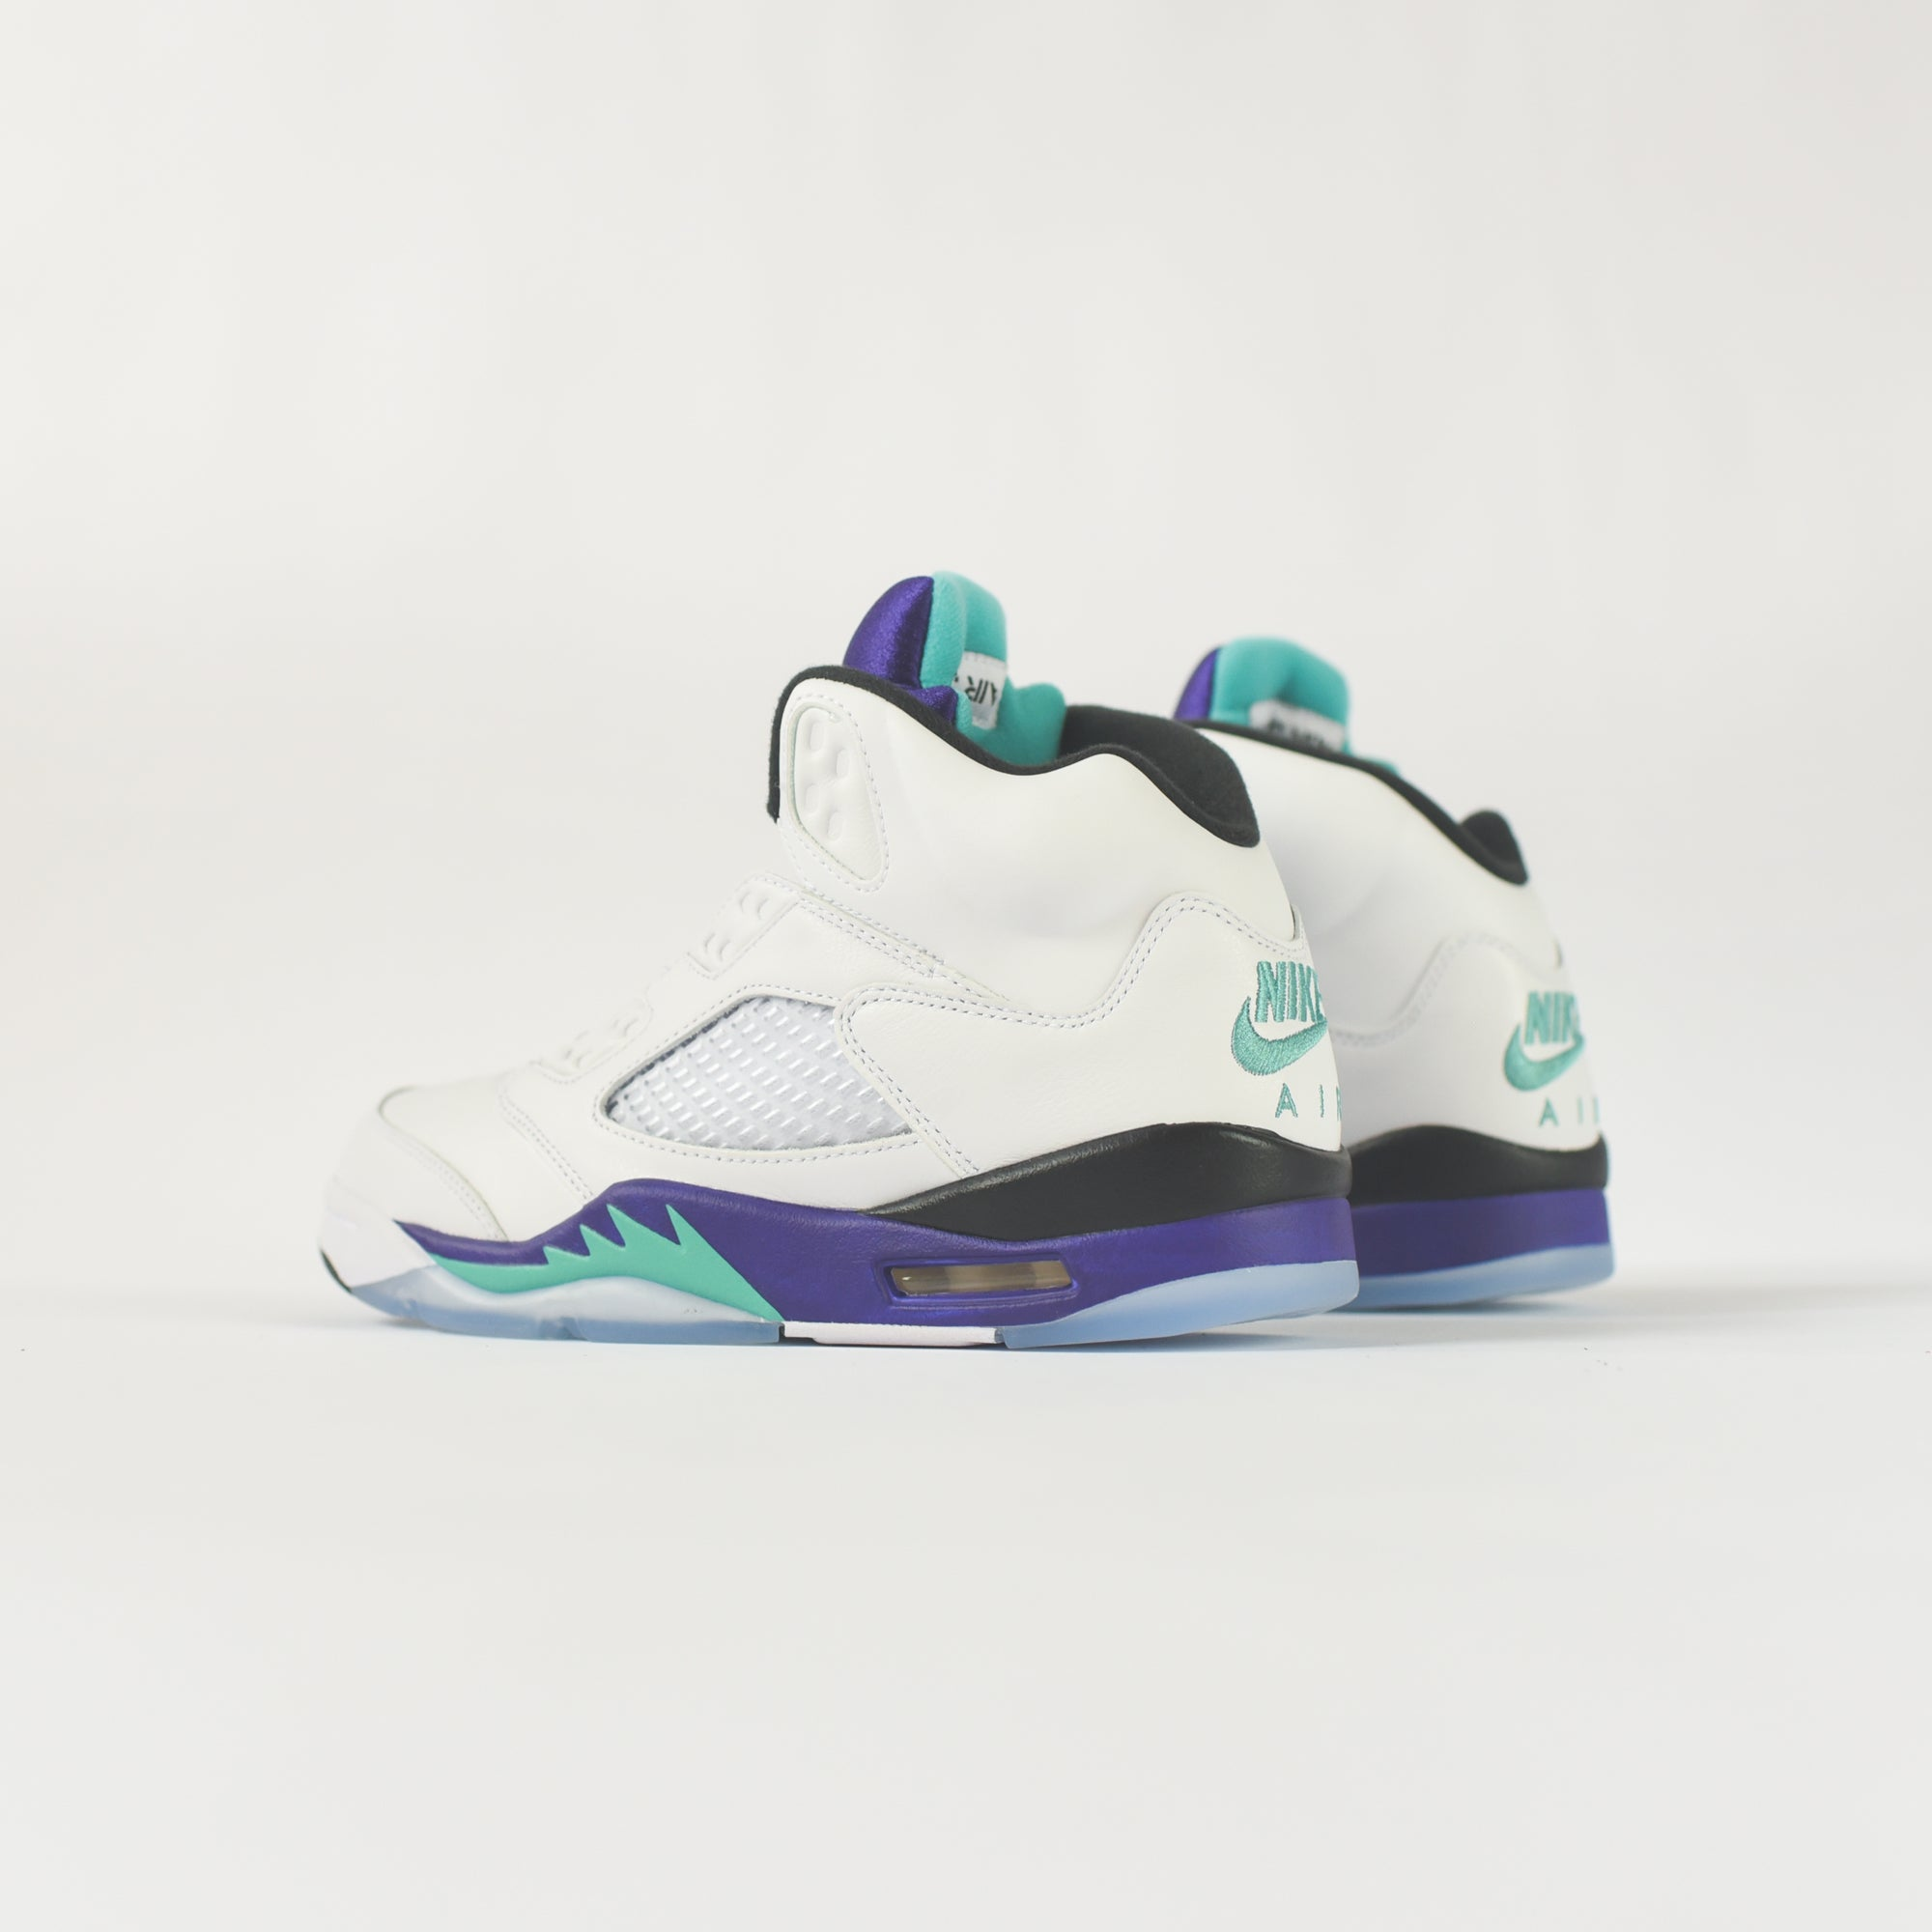 e4564a995139 Nike Air Jordan 5 Retro NRG - White   New Emerald   Grape Ice – Kith